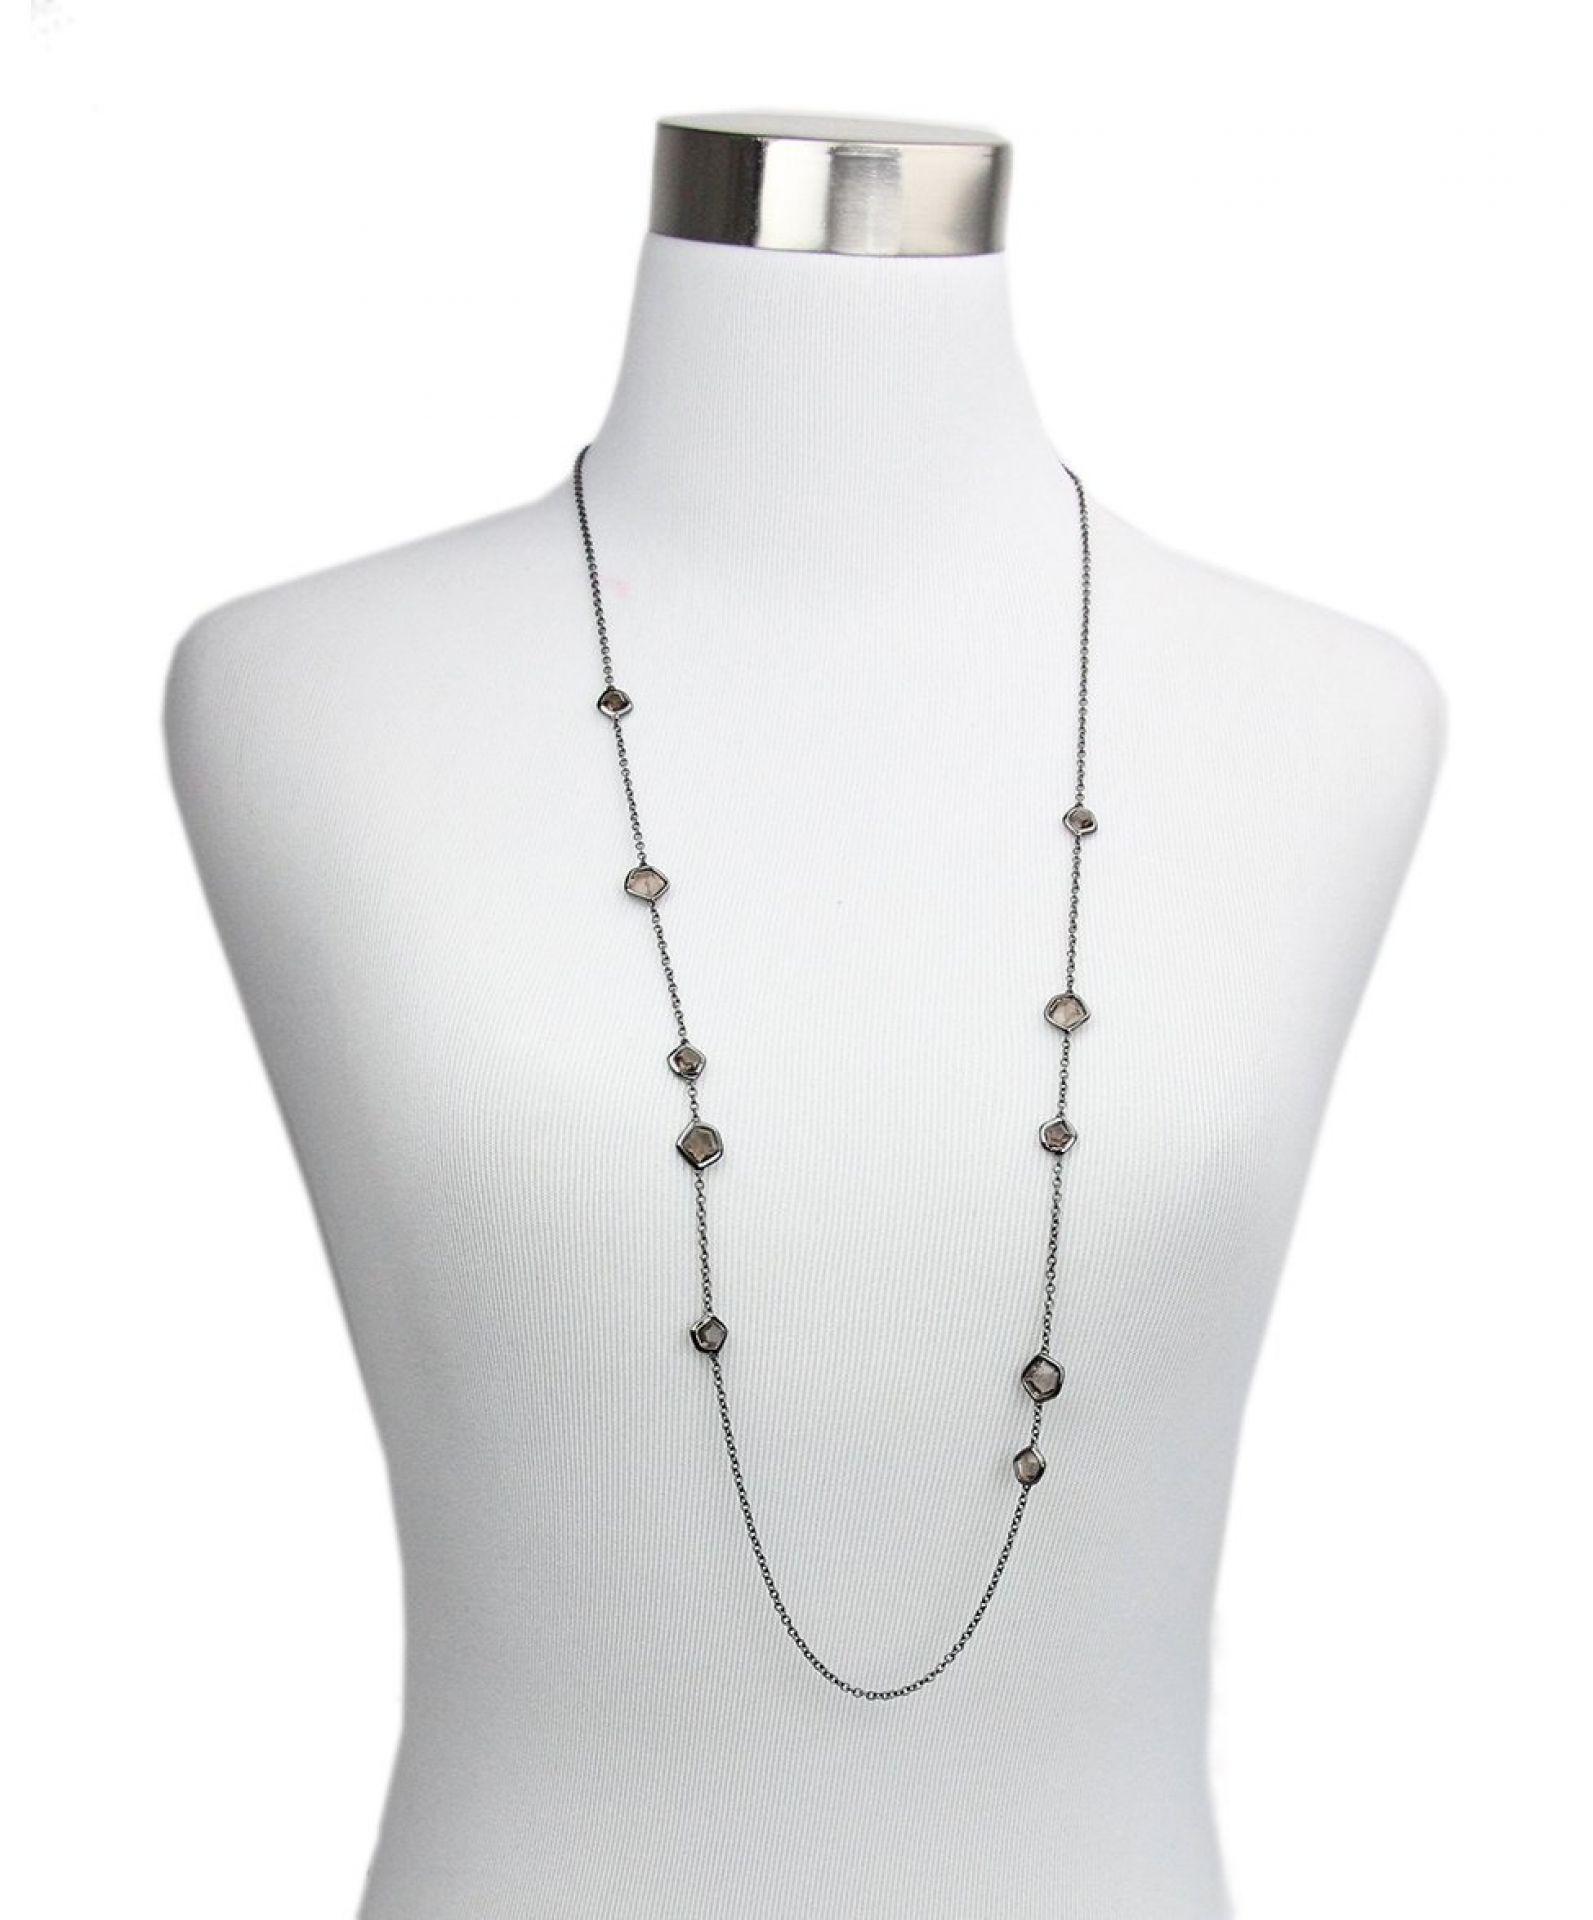 IPPOLITA BLACK STERLING SILVER STONE RHODIUM NECKLACE